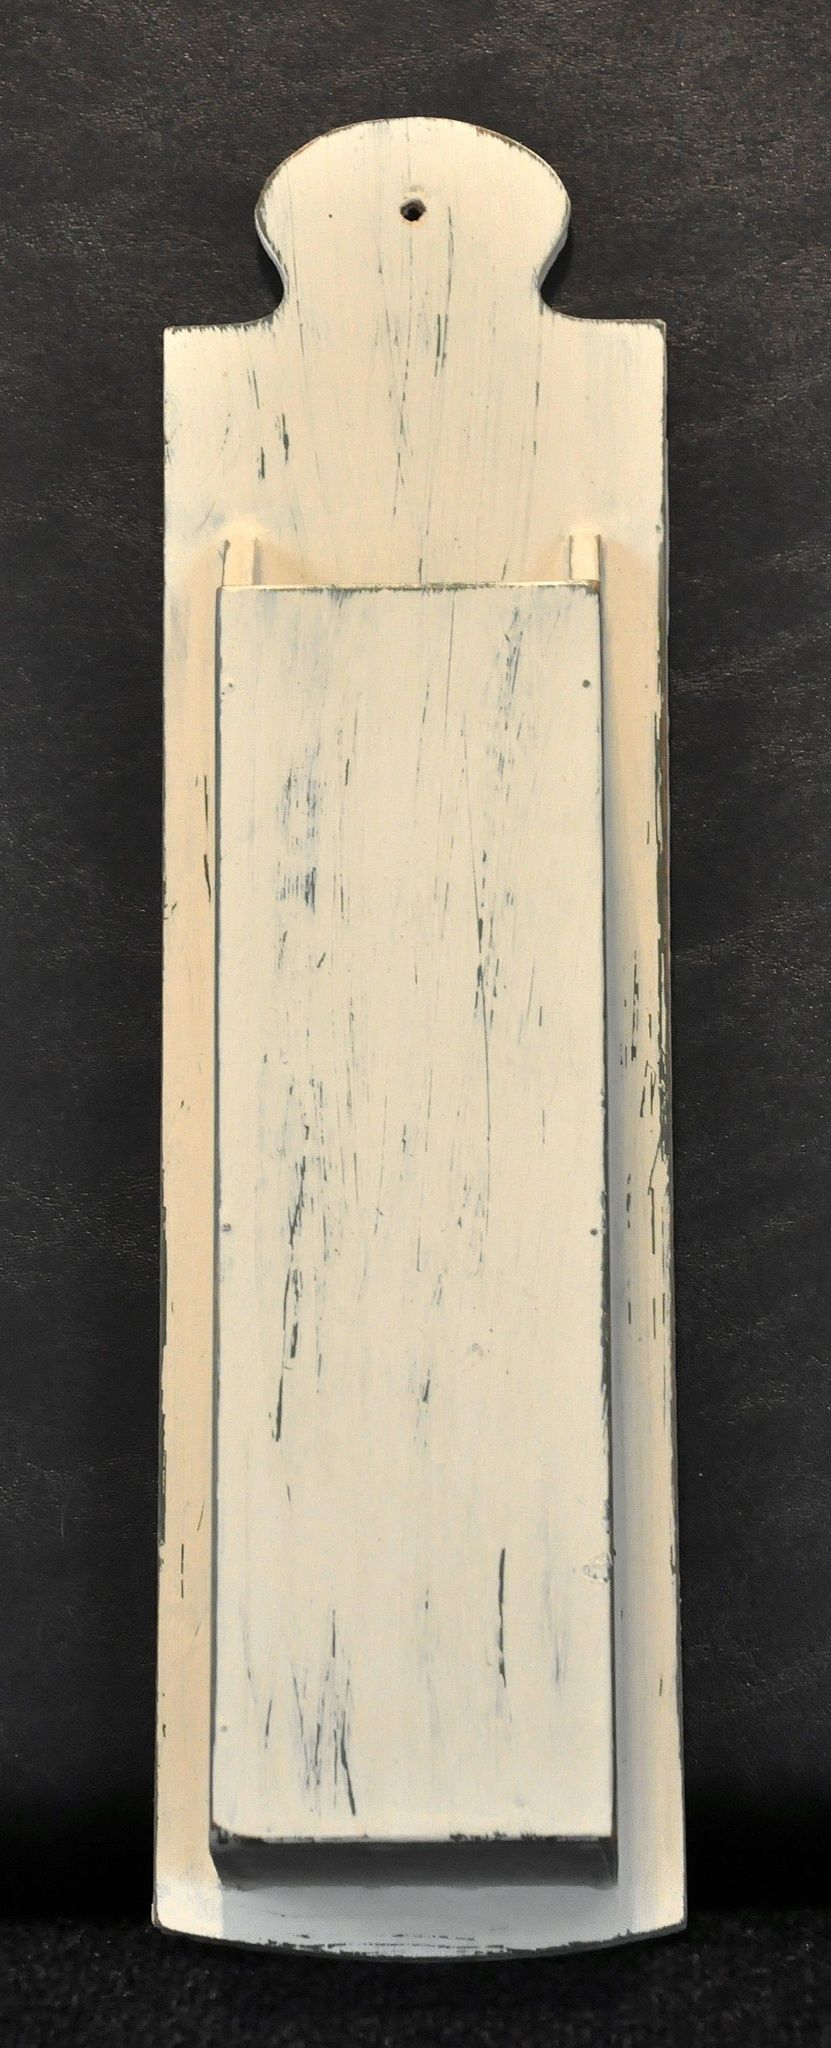 Painted and distressed wooden match box